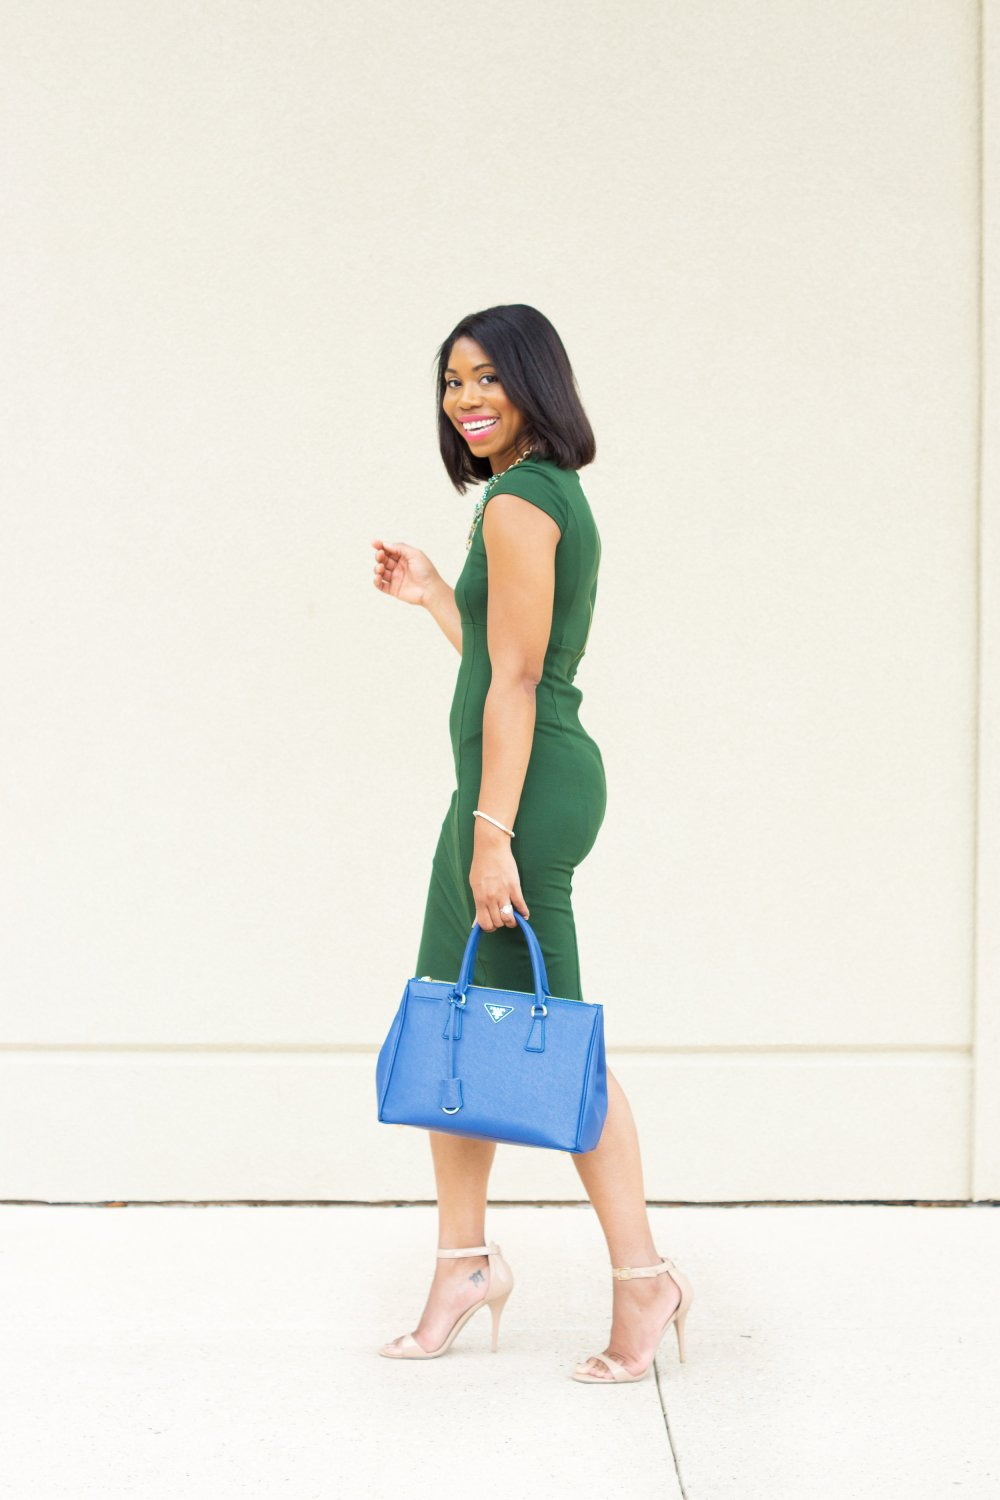 the best bodycon dress for women with curves black fashion blogger stephanie taylor jackson